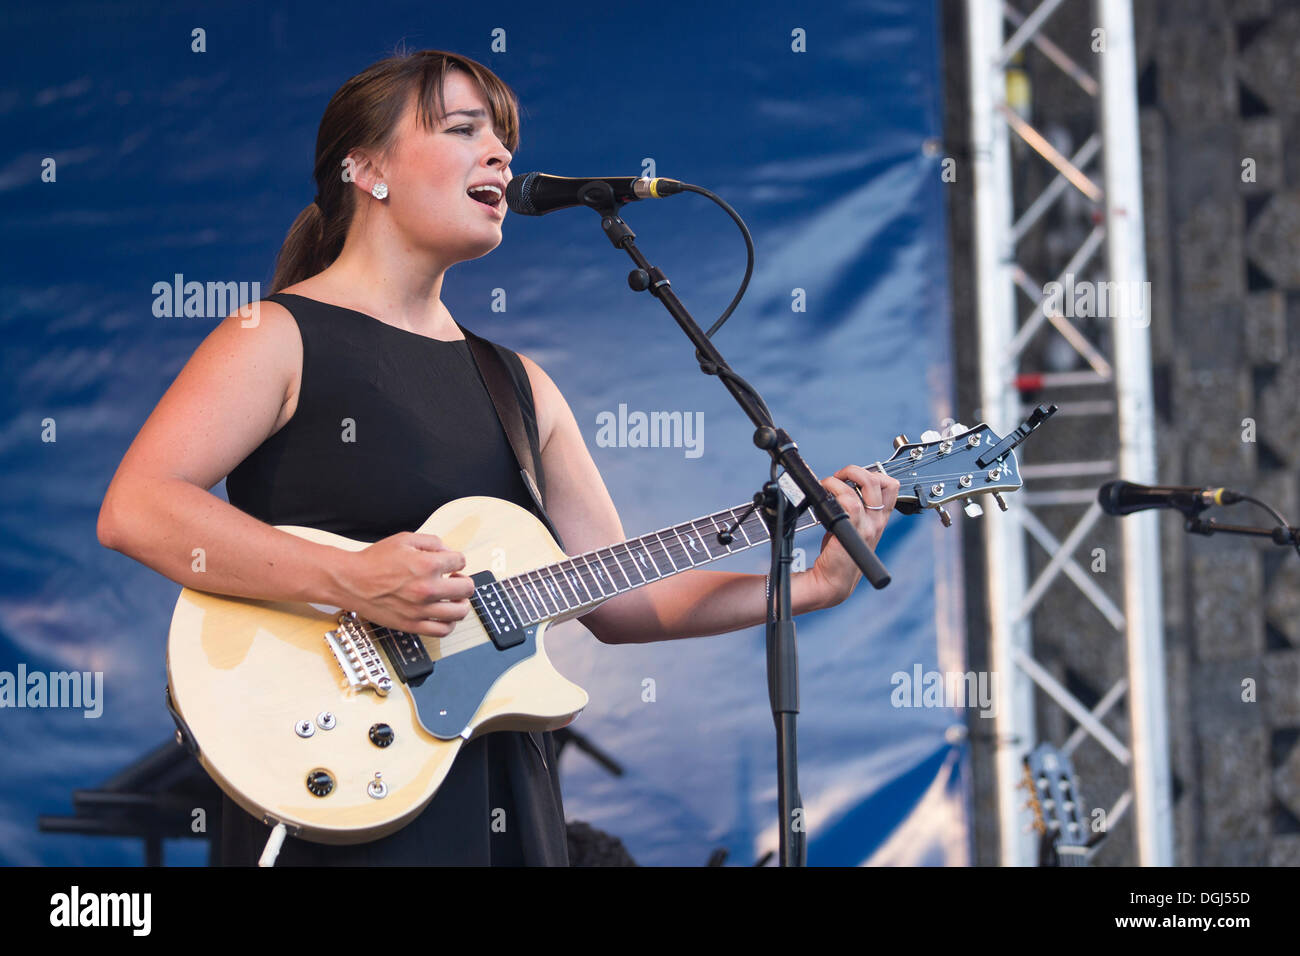 U.S.-American singer, songwriter Lizzy Loeb performing live at the Blue Balls Festival, Pavilion at the lake, Lucerne - Stock Image